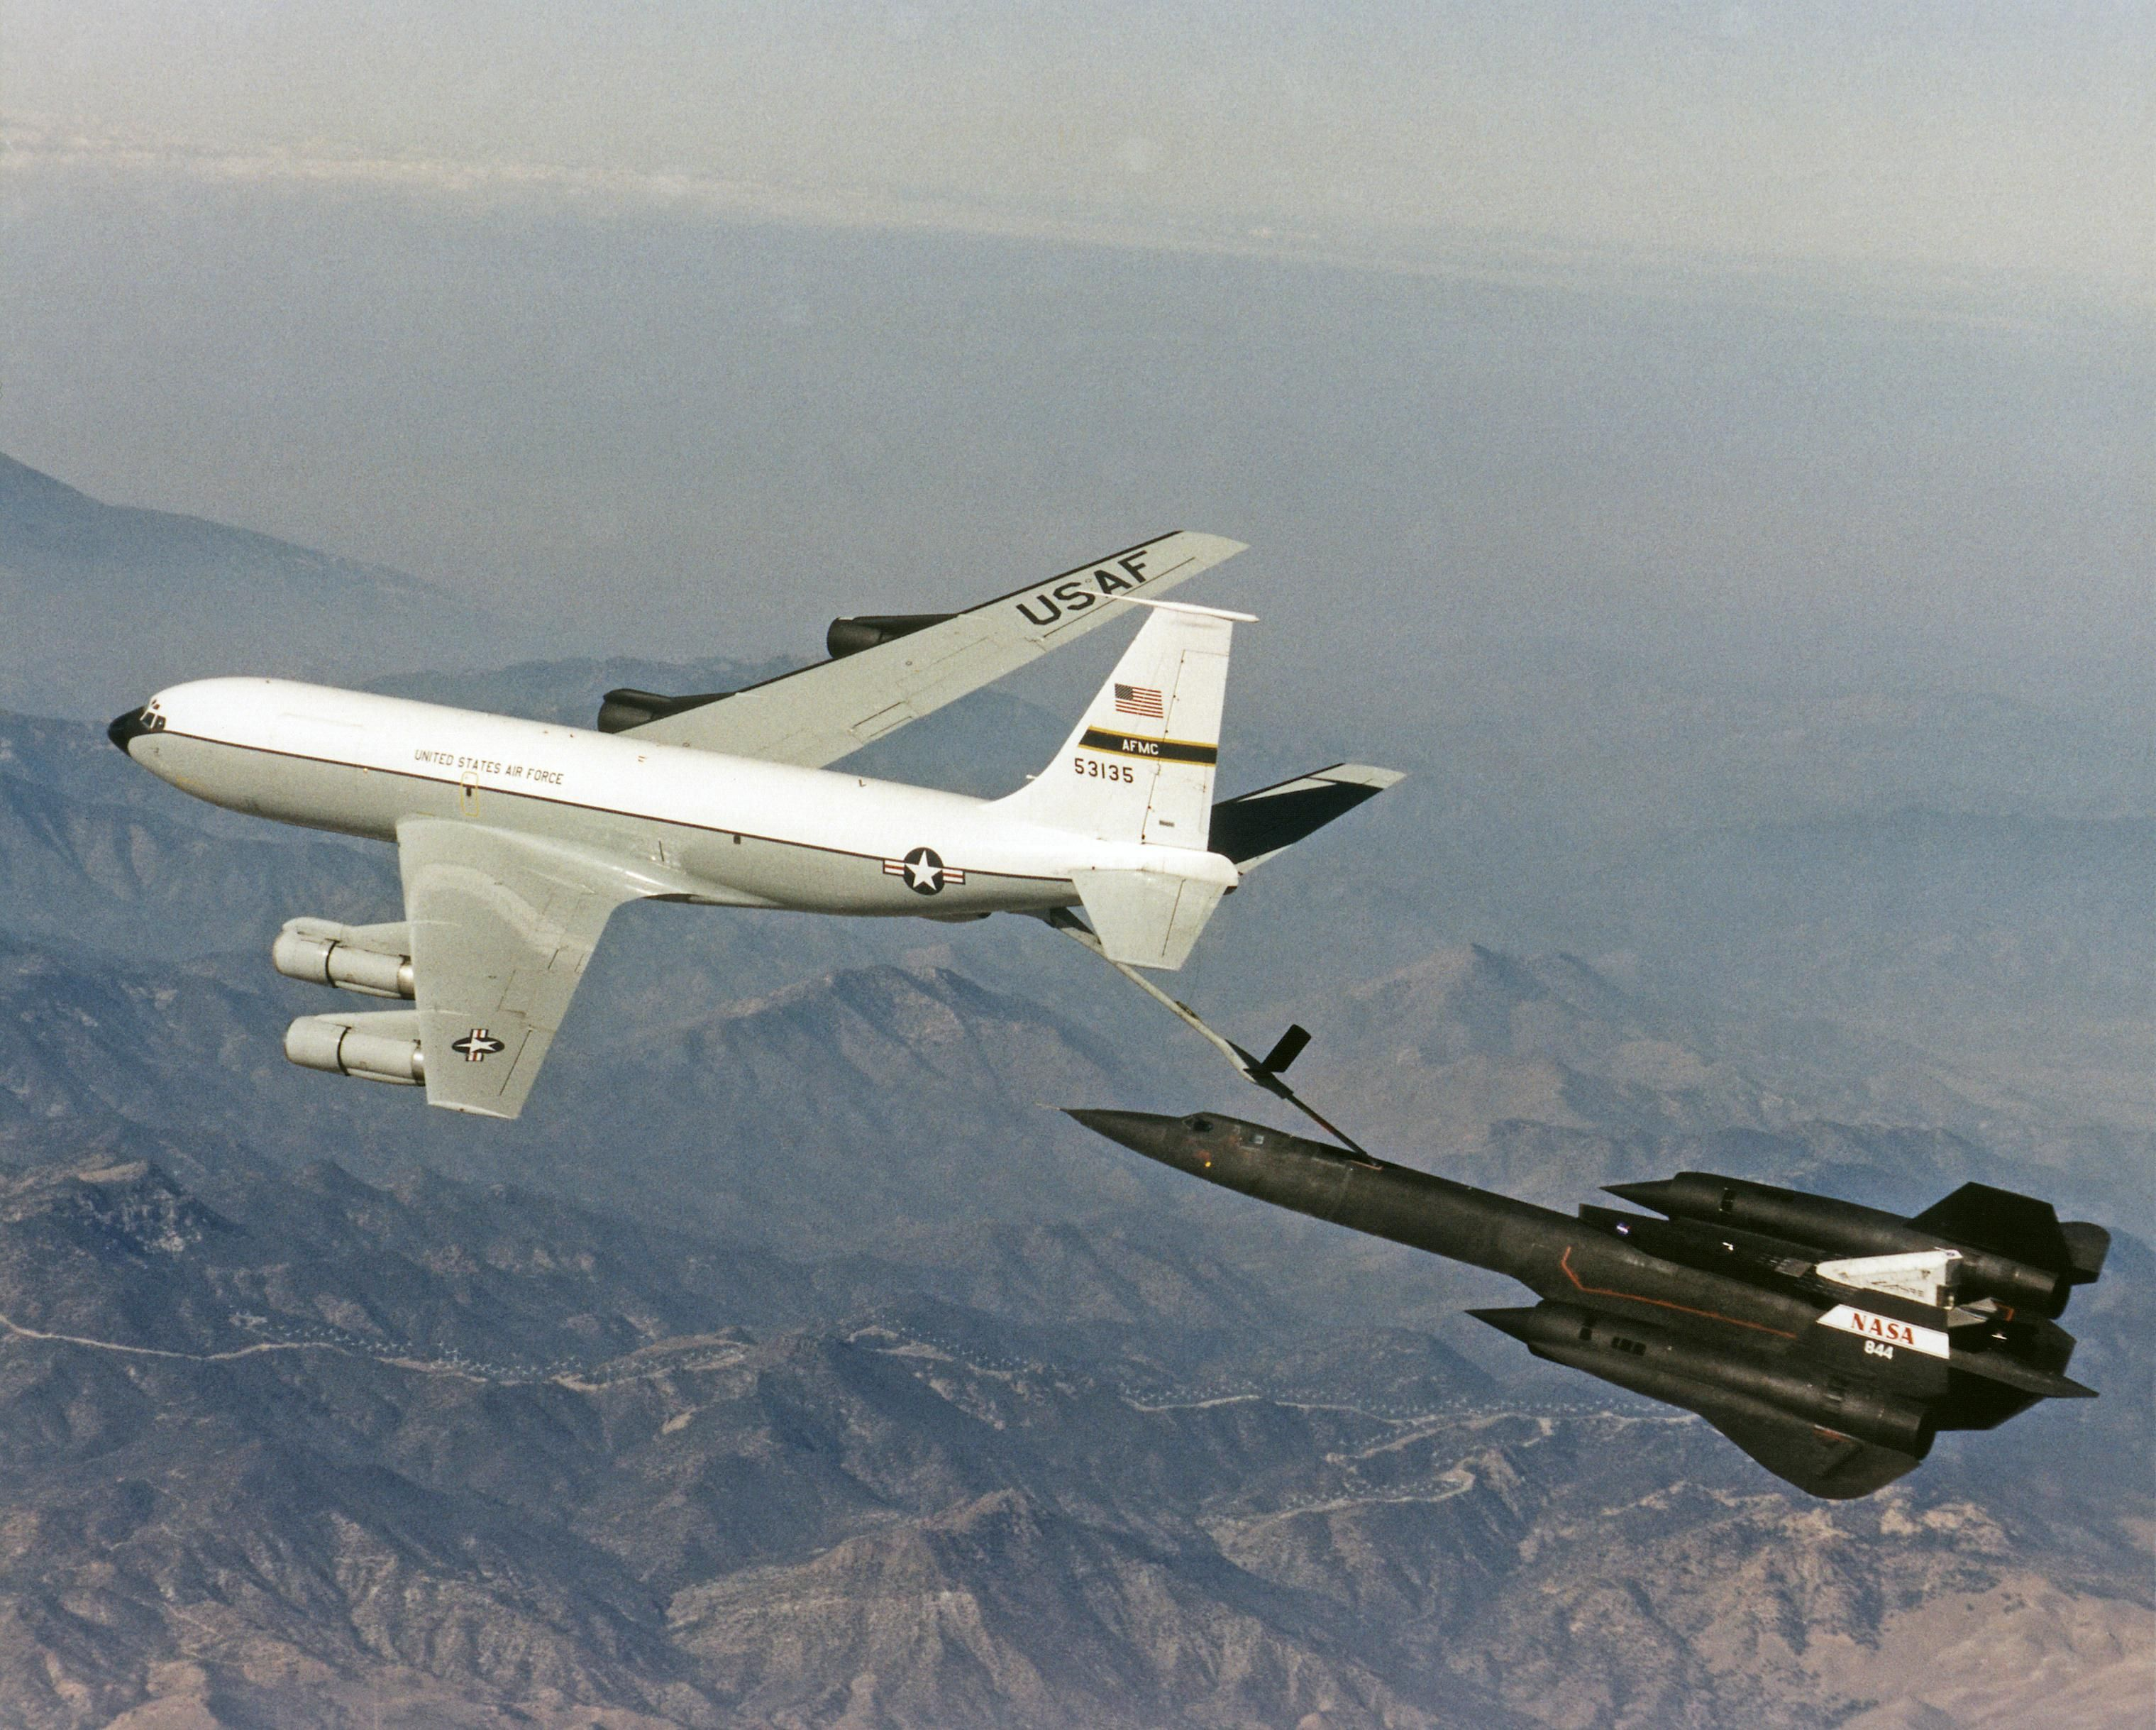 The NASA SR-71 Blackbird being Refueled by a KC-135 Tanker ...